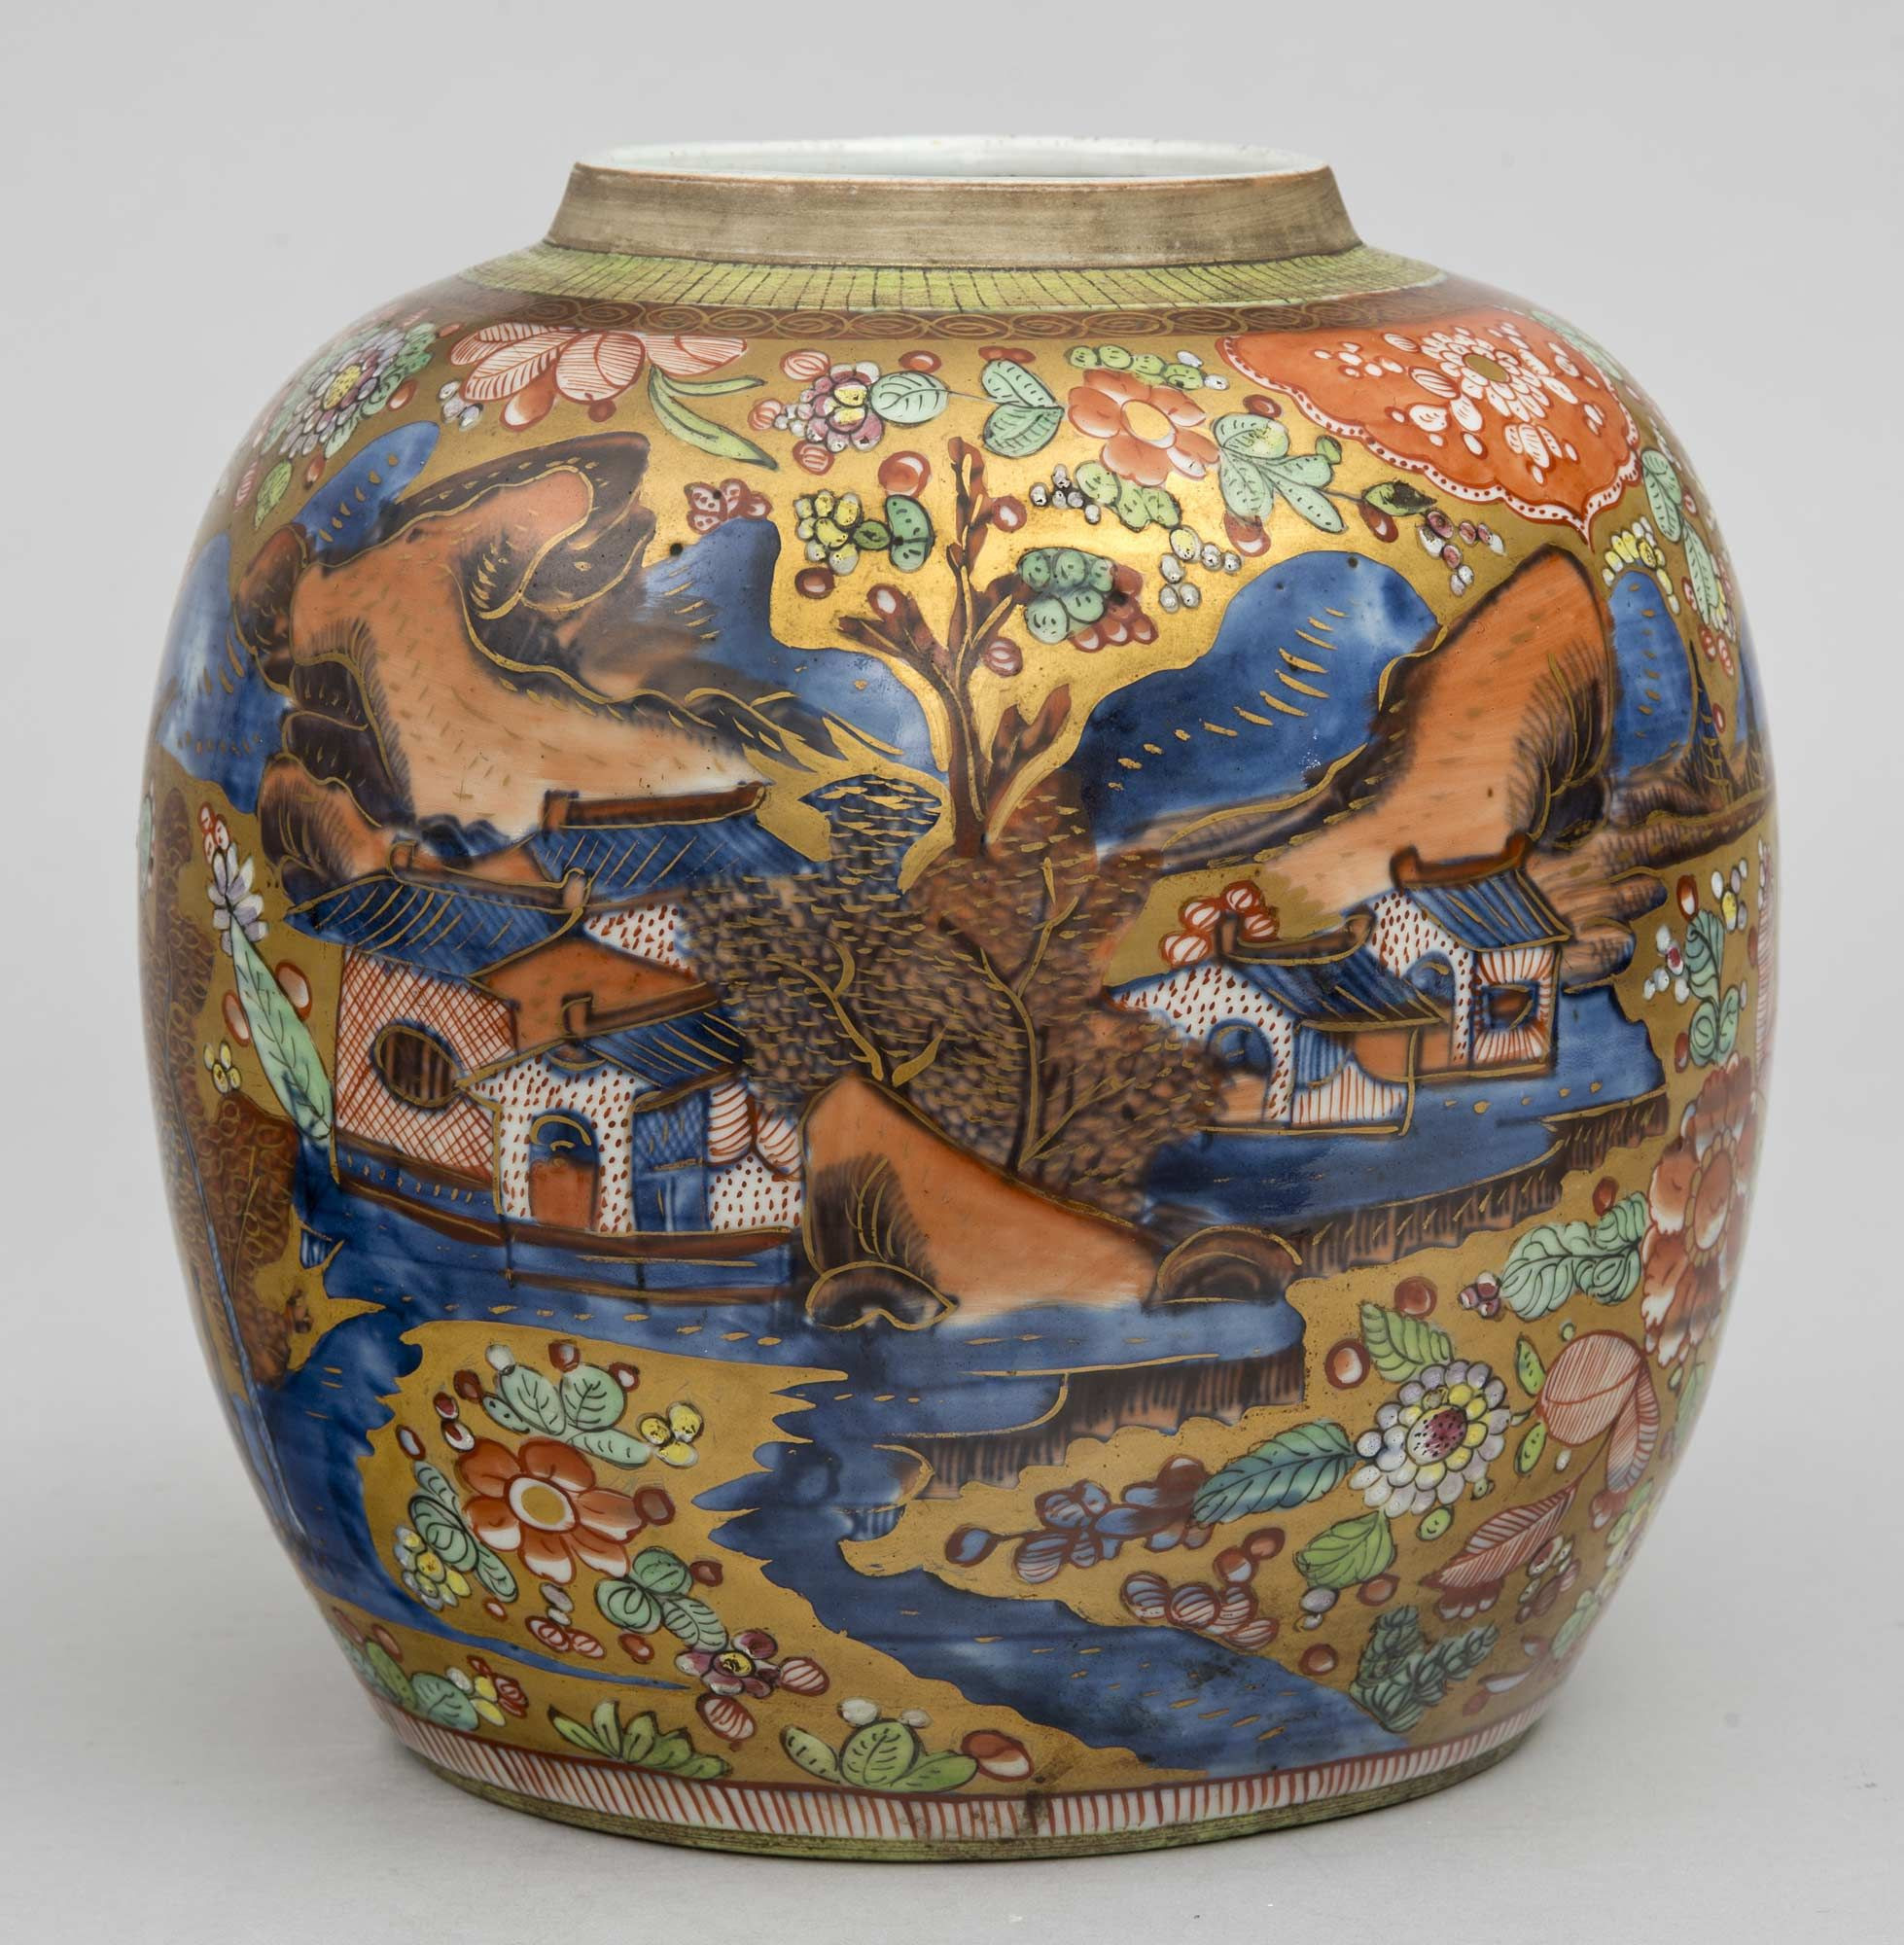 old oriental vases of chinese vases images stock chinese qianlong period blue and white within chinese vases images stock chinese qianlong period blue and white ginger jar that has been of